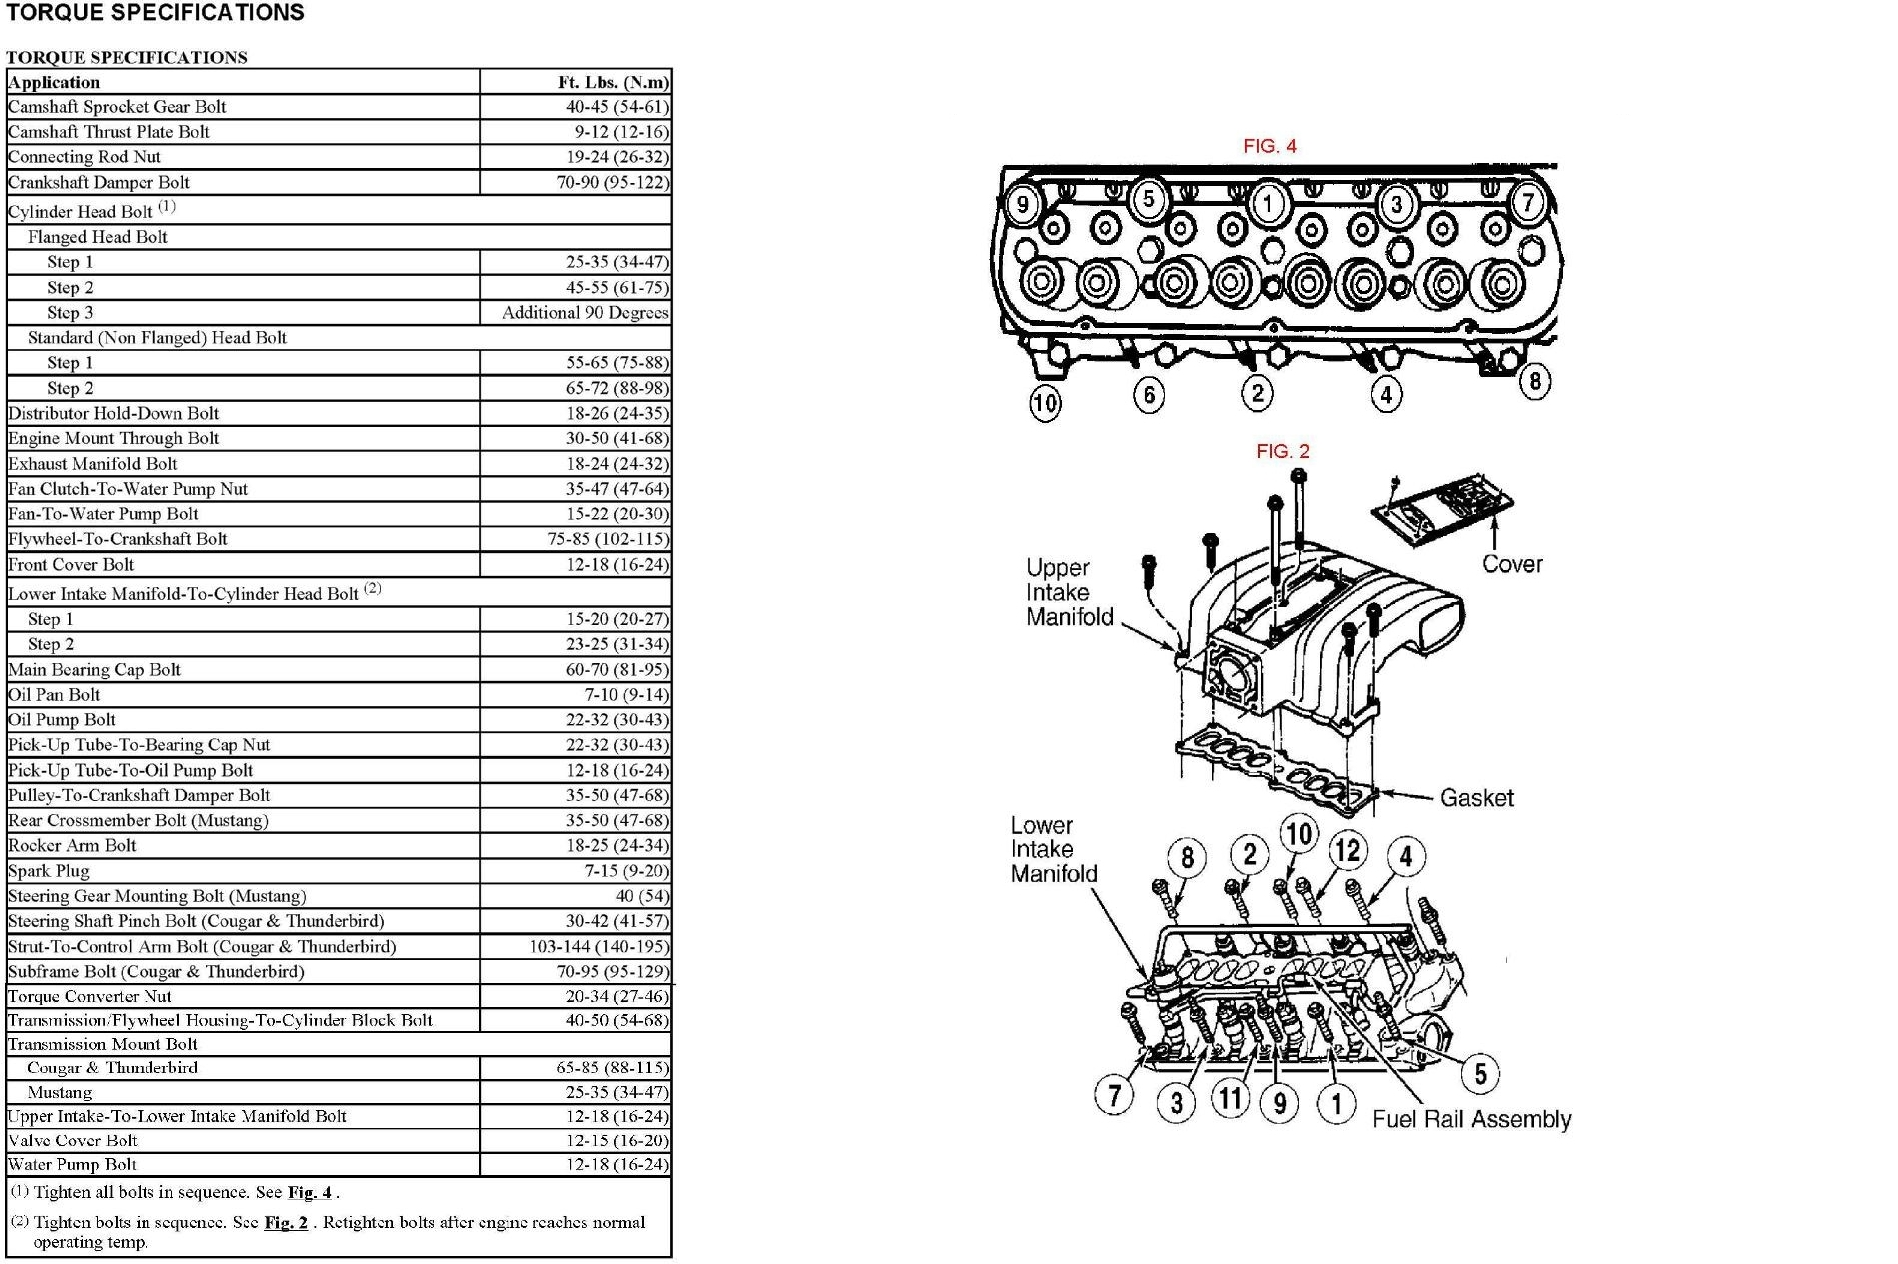 Ford 302 Engine Torque Specs